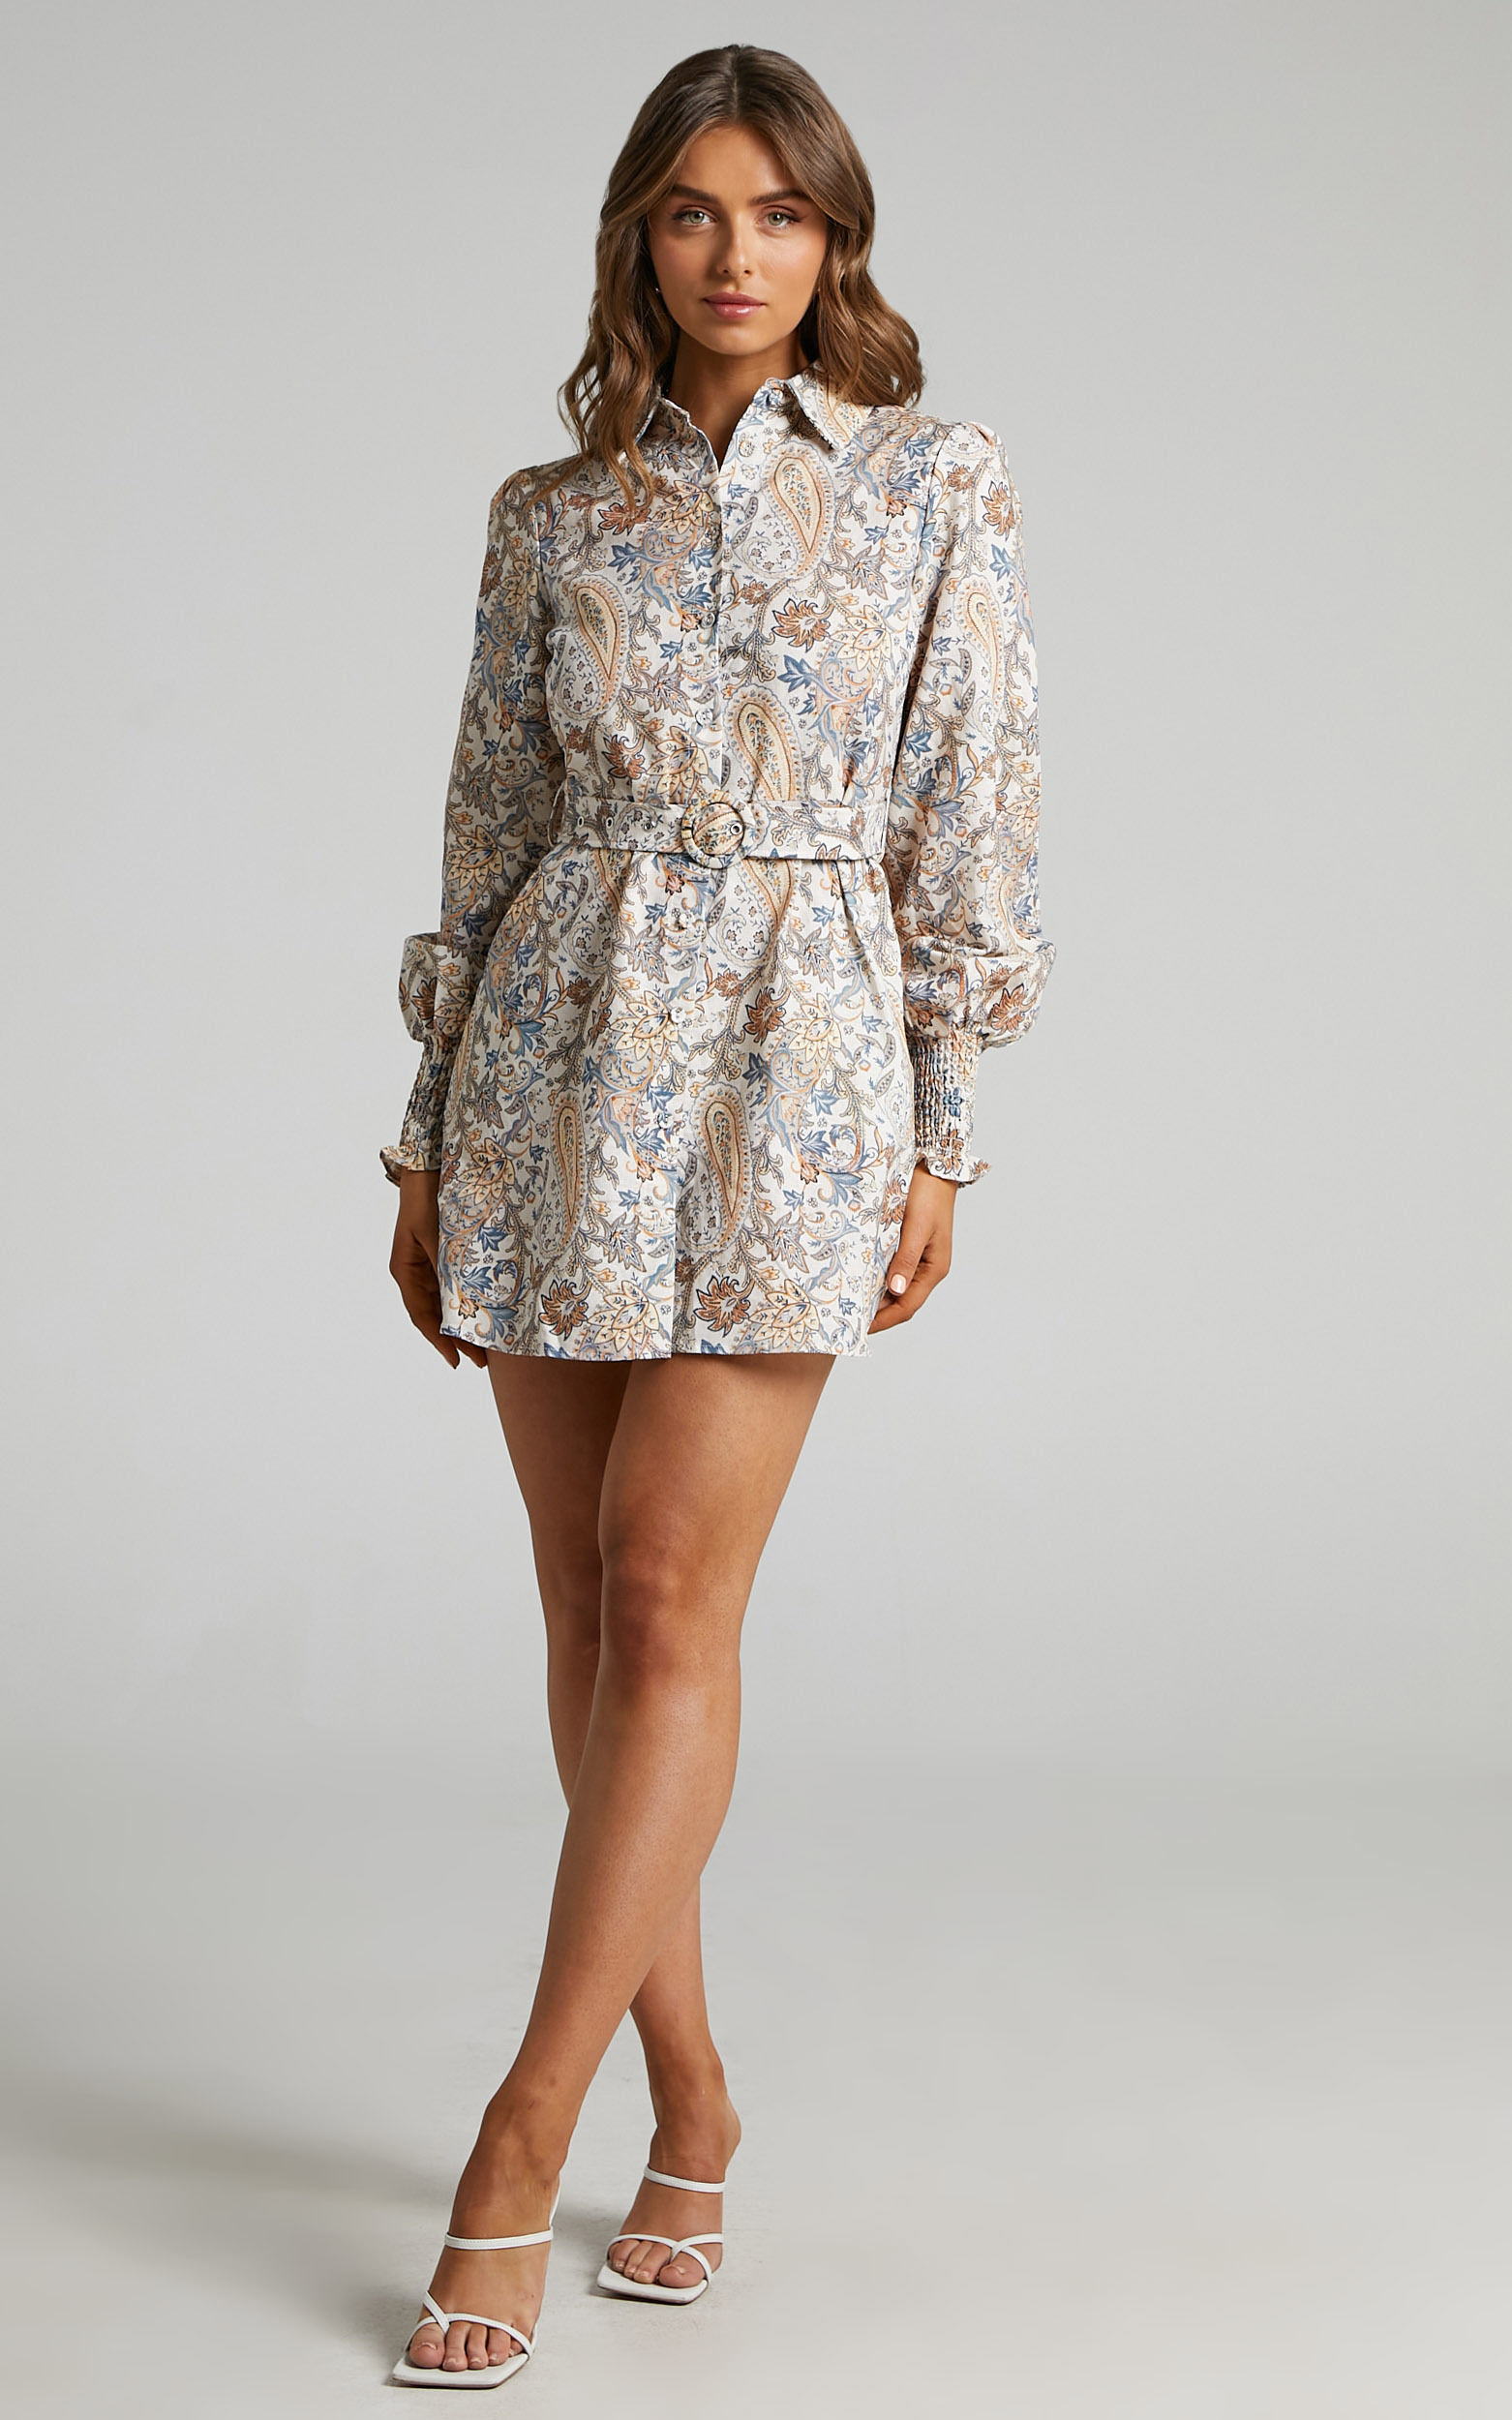 Charlie Holiday - Jagger Dress in Paisley - L, MLT2, hi-res image number null